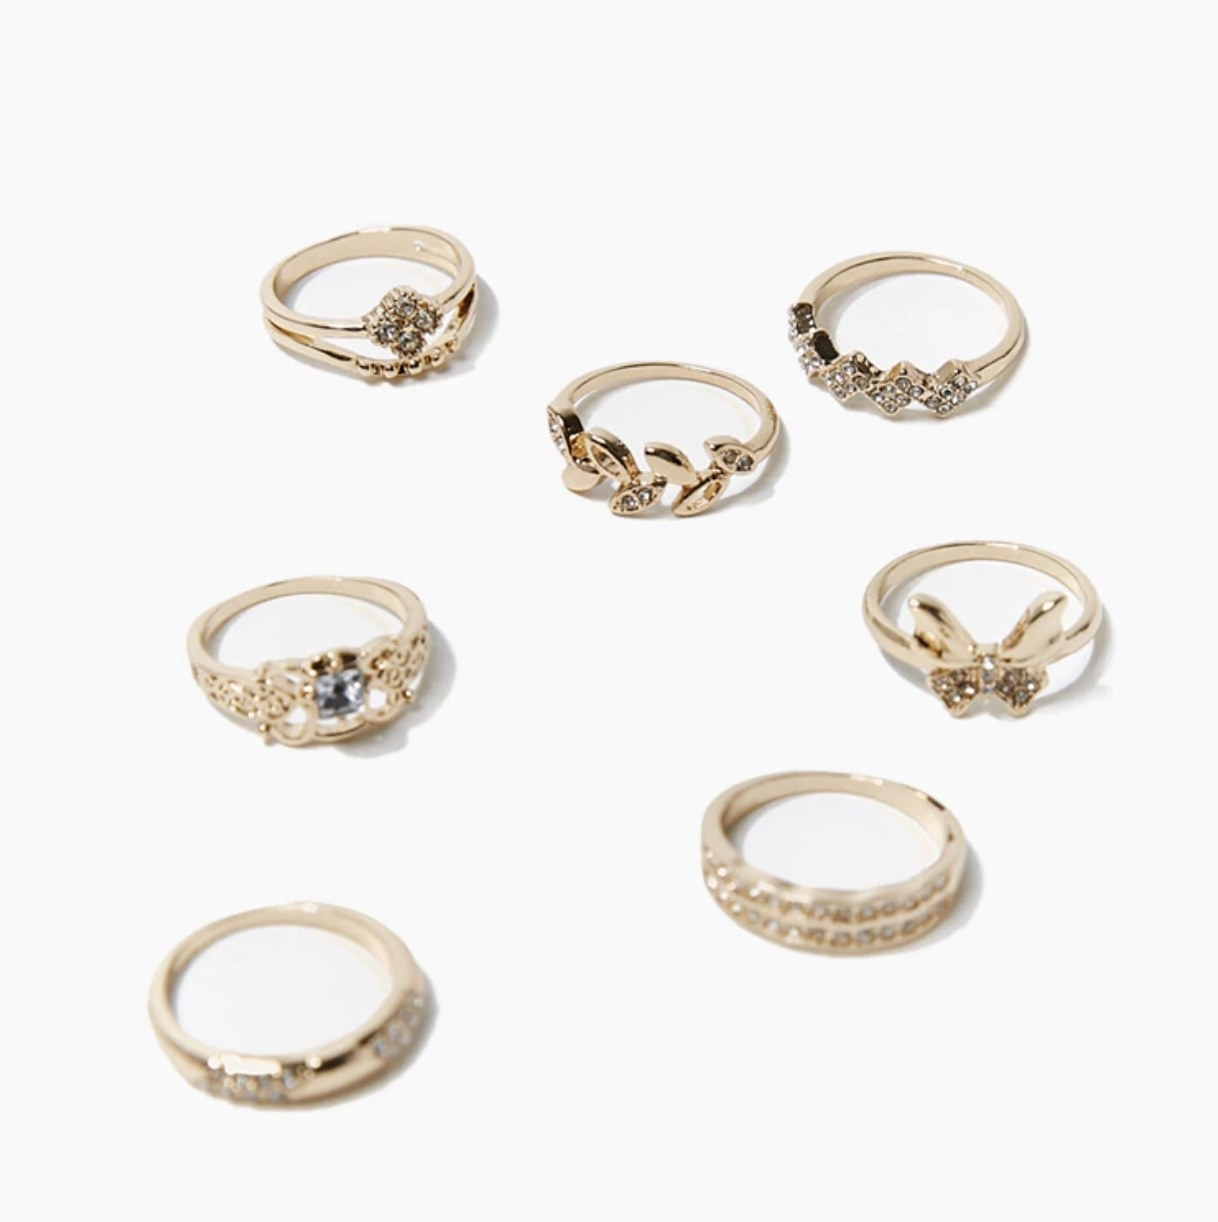 The gold ring set